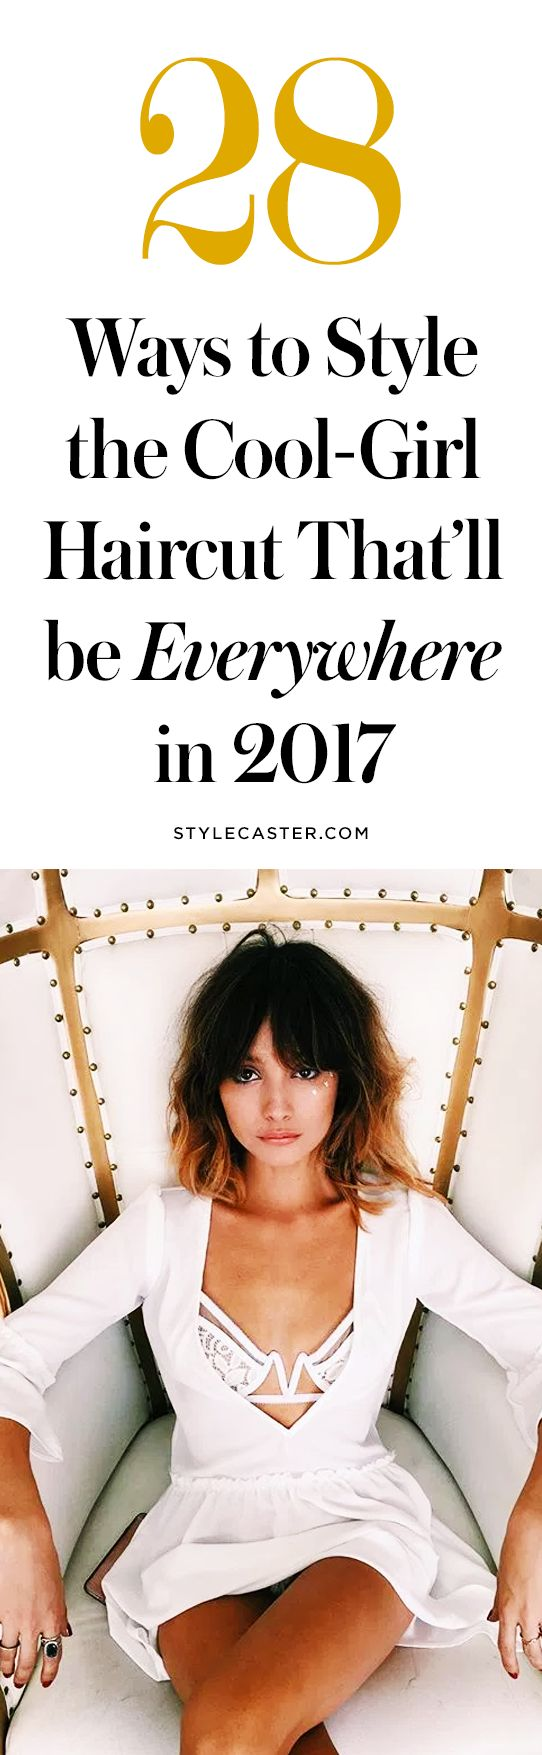 28 ways to style the coolest haircut trend for 2017—the bob with bangs | short hairstyle inspo | @stylecaster